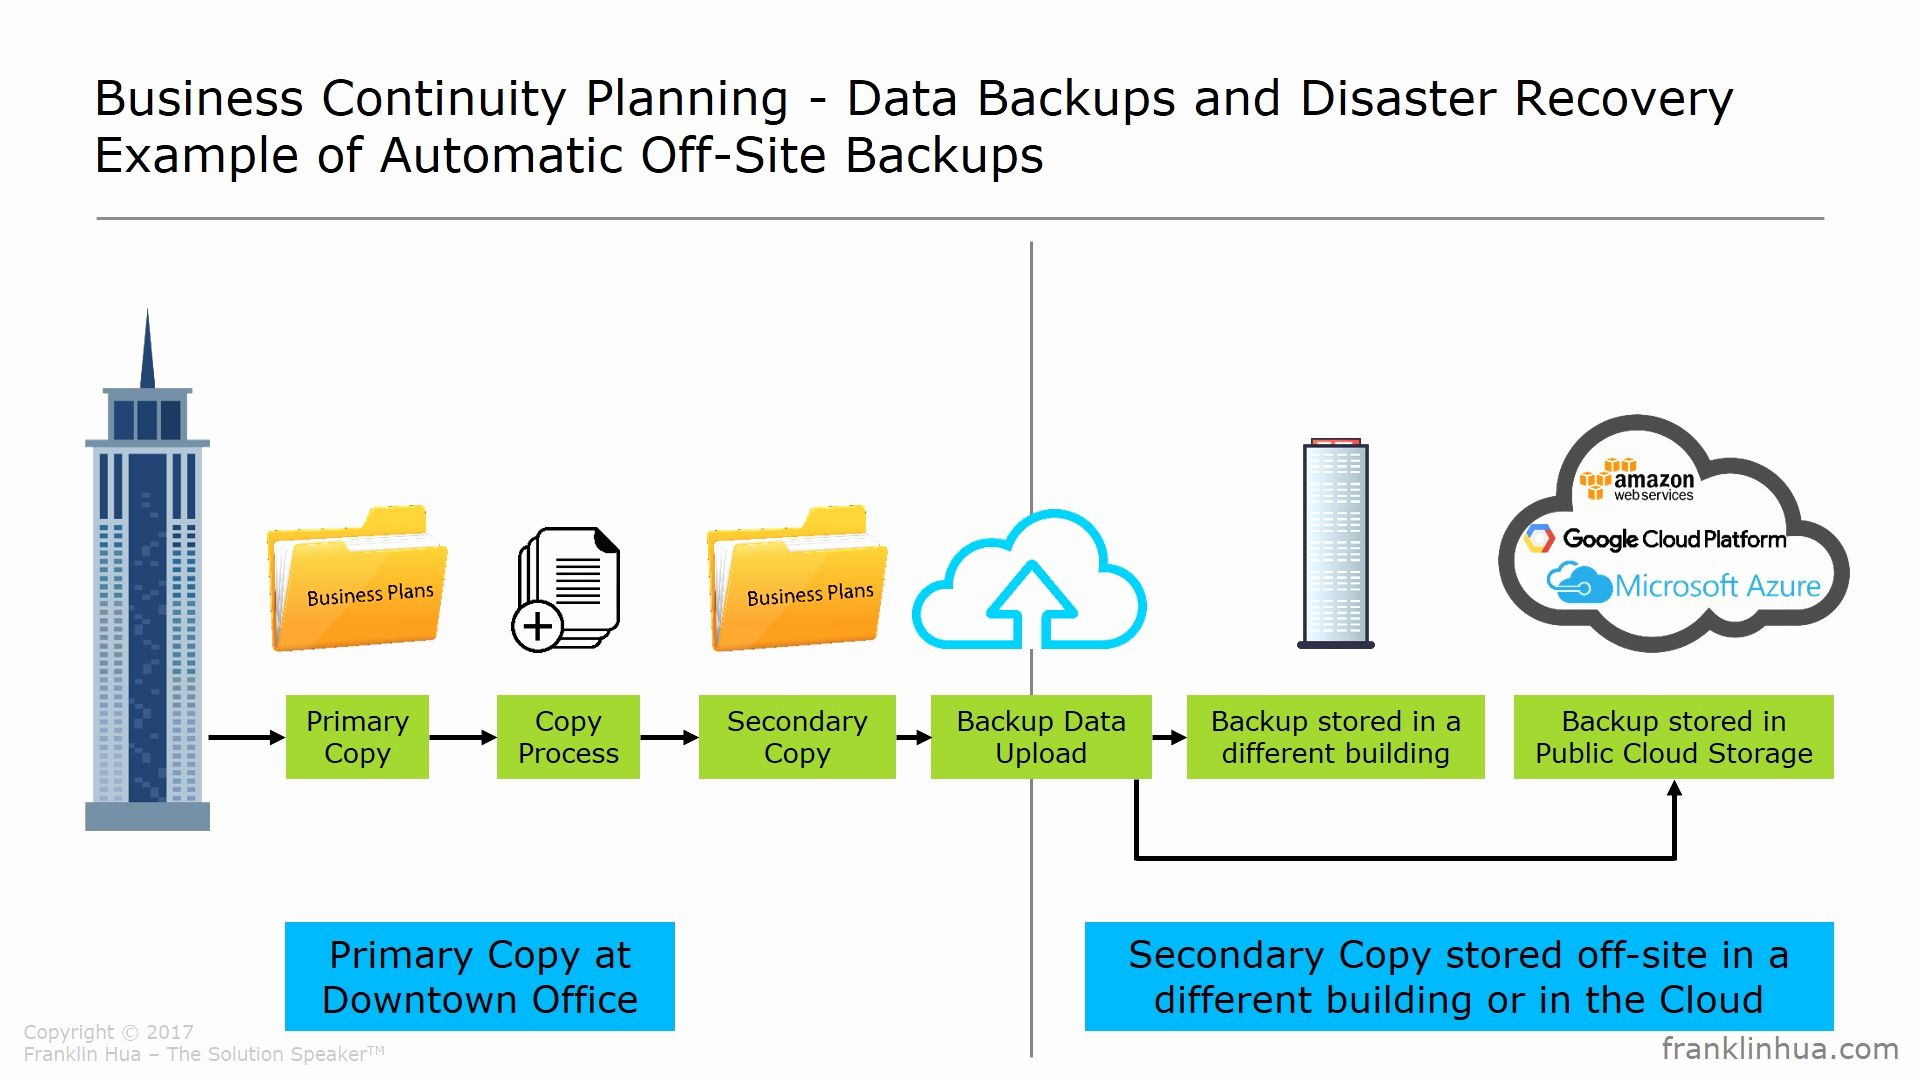 Business Continuity Plan Pdf Luxury 018 It Disasterry Plan Template Information Technology L Business Continuity Planning Business Continuity Disaster Recovery